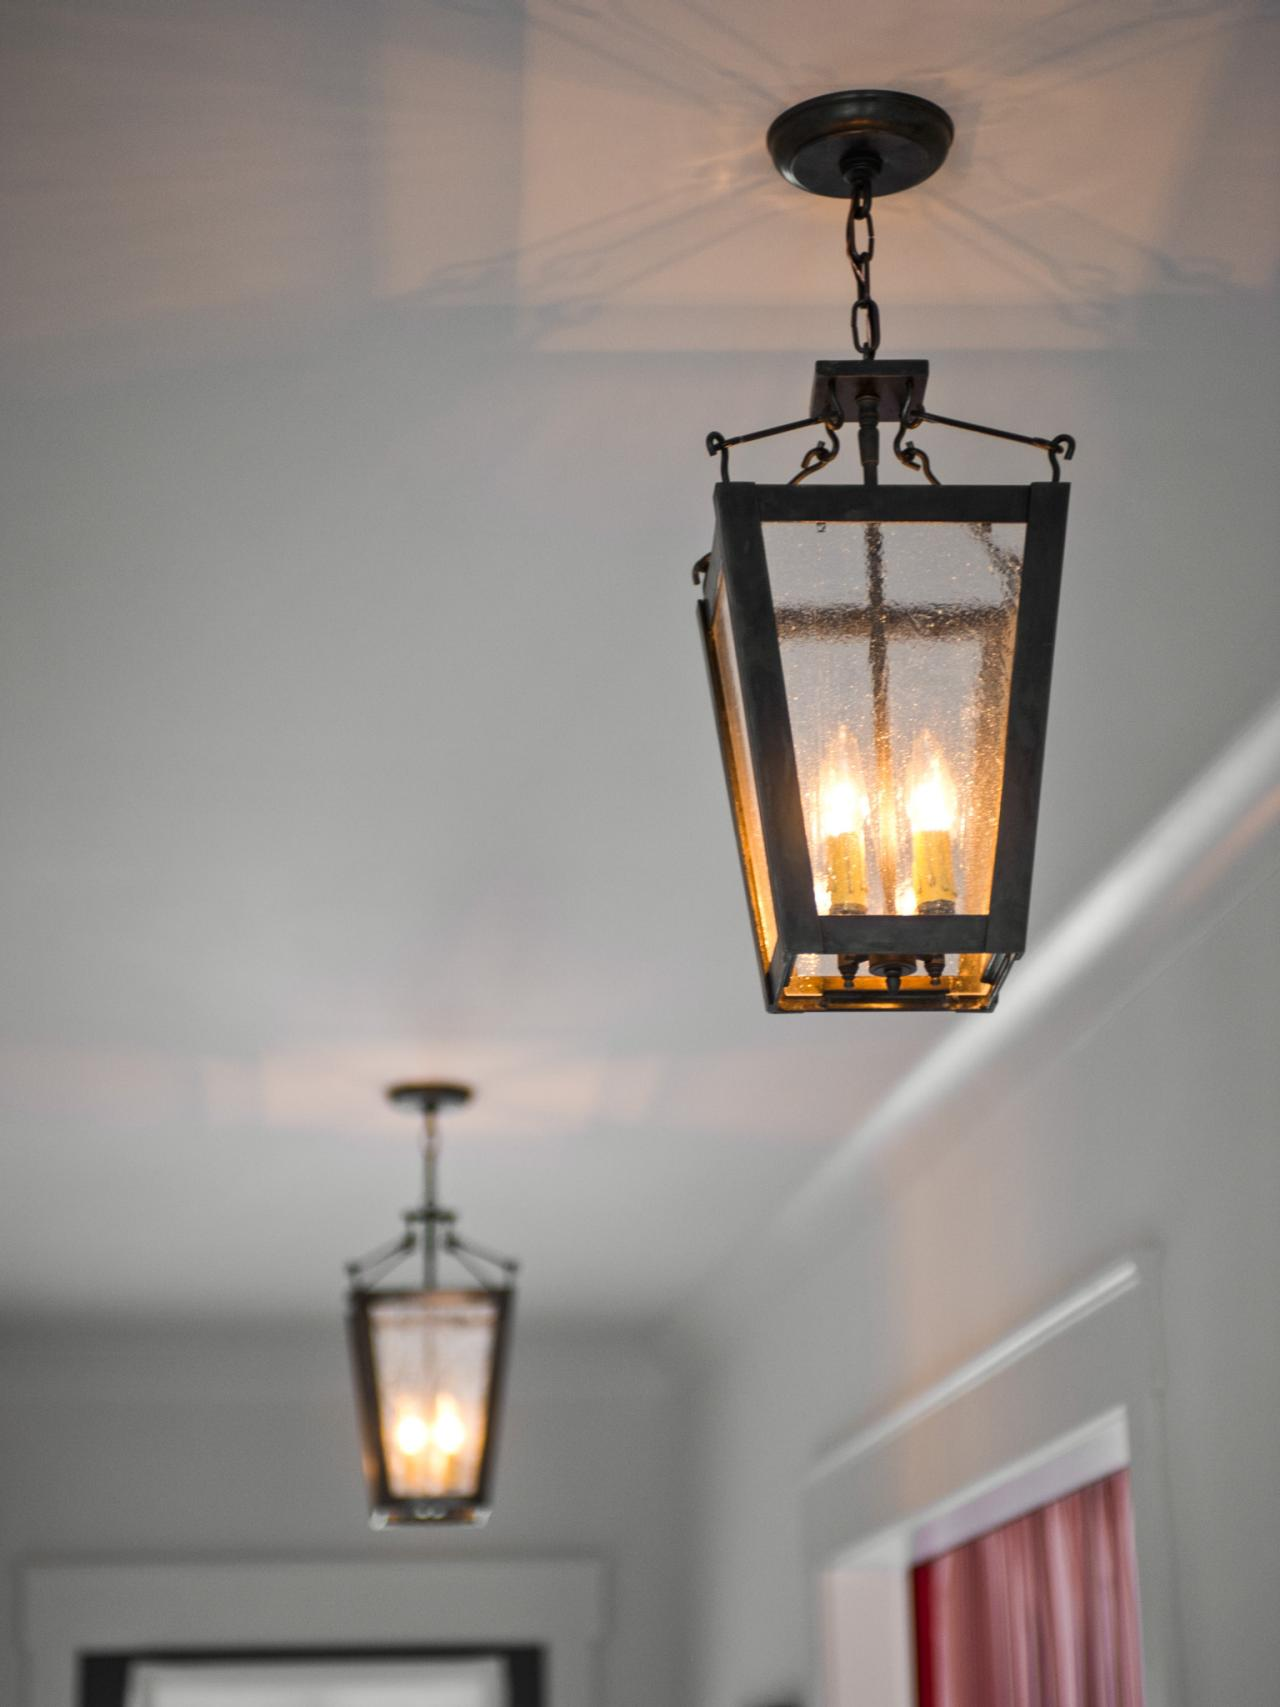 Foyer Lighting Lantern : Foyer pictures from hgtv smart home